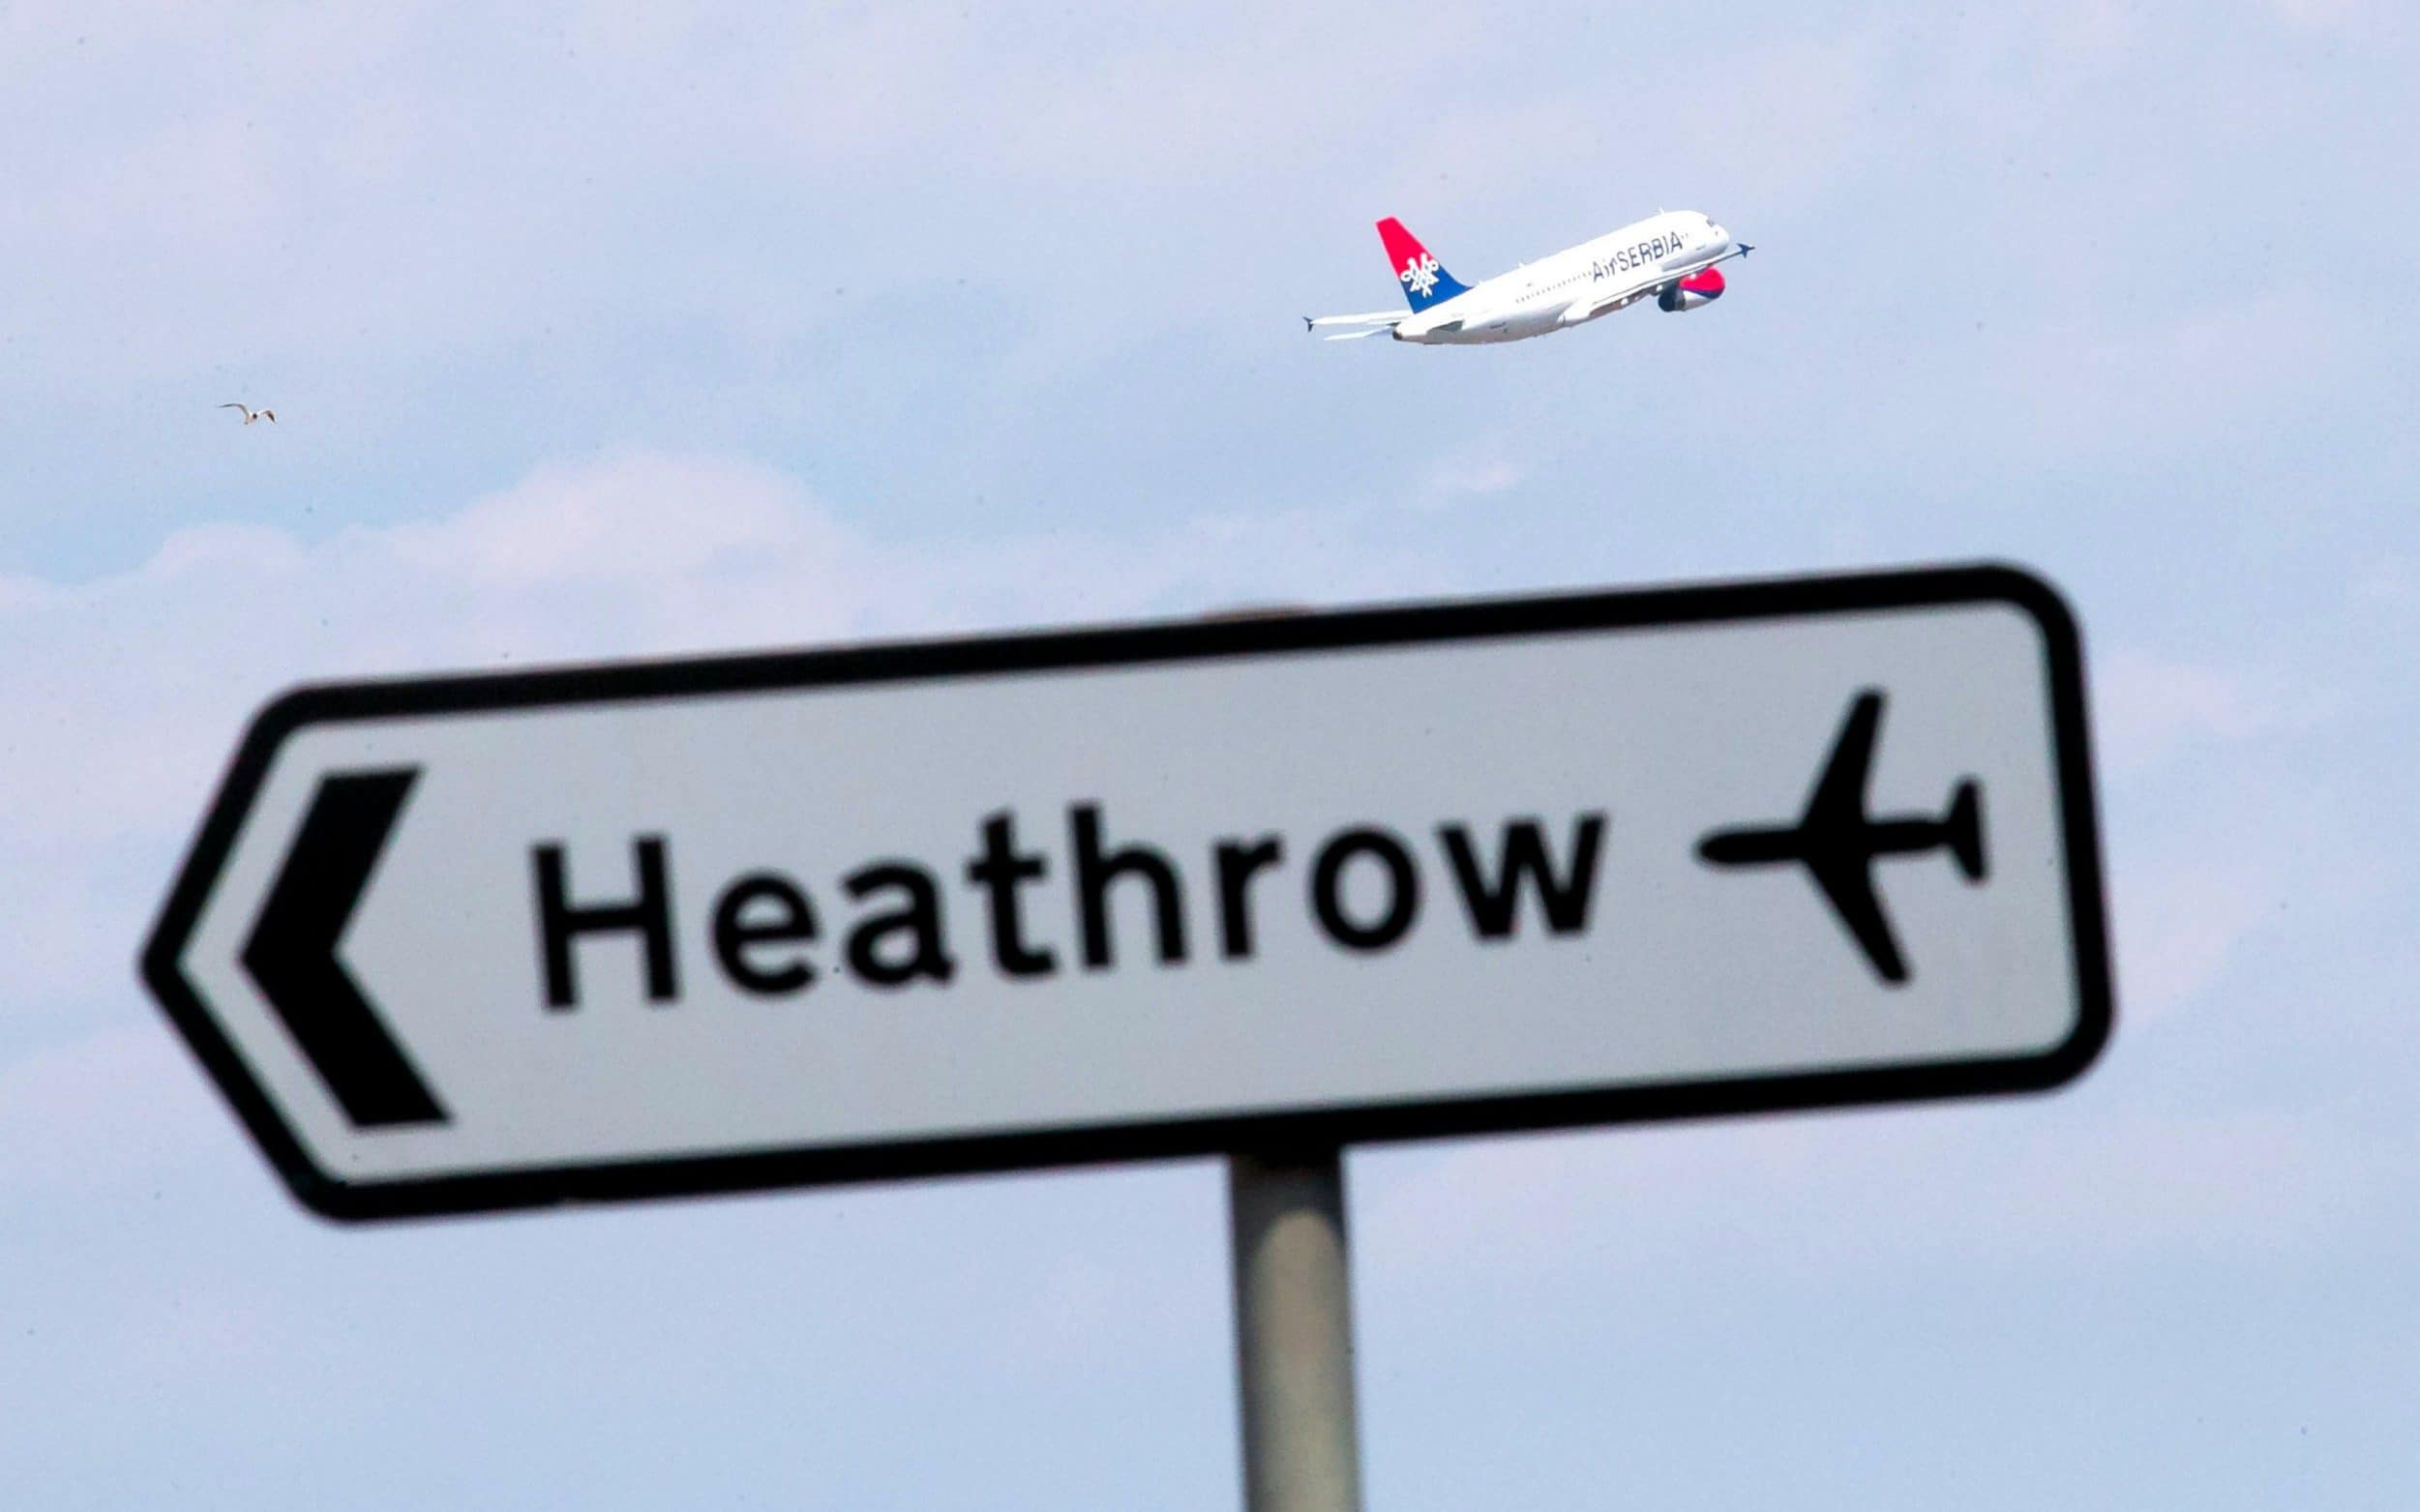 A plane taking off at Heathrow Airport,